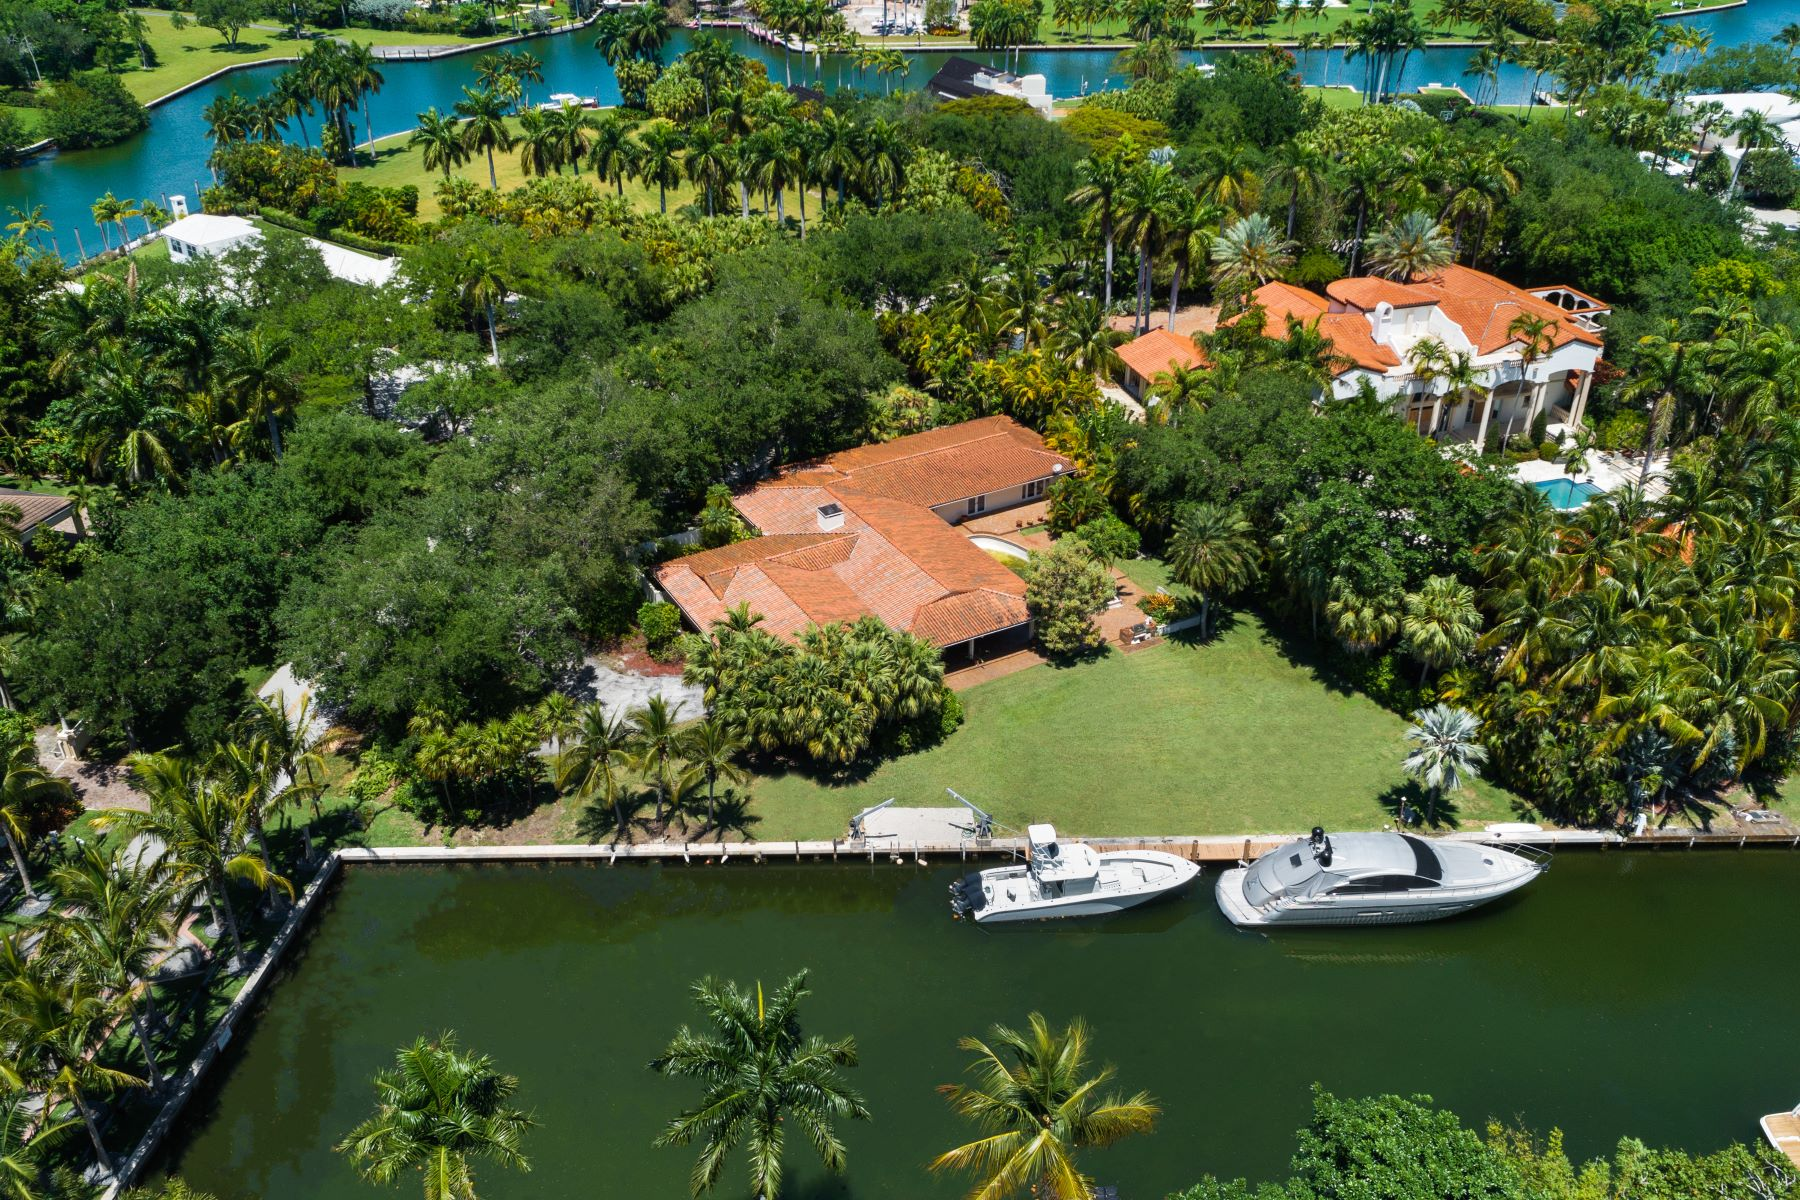 Single Family Homes for Sale at 650 Leucadendra Dr Coral Gables, Florida 33156 United States